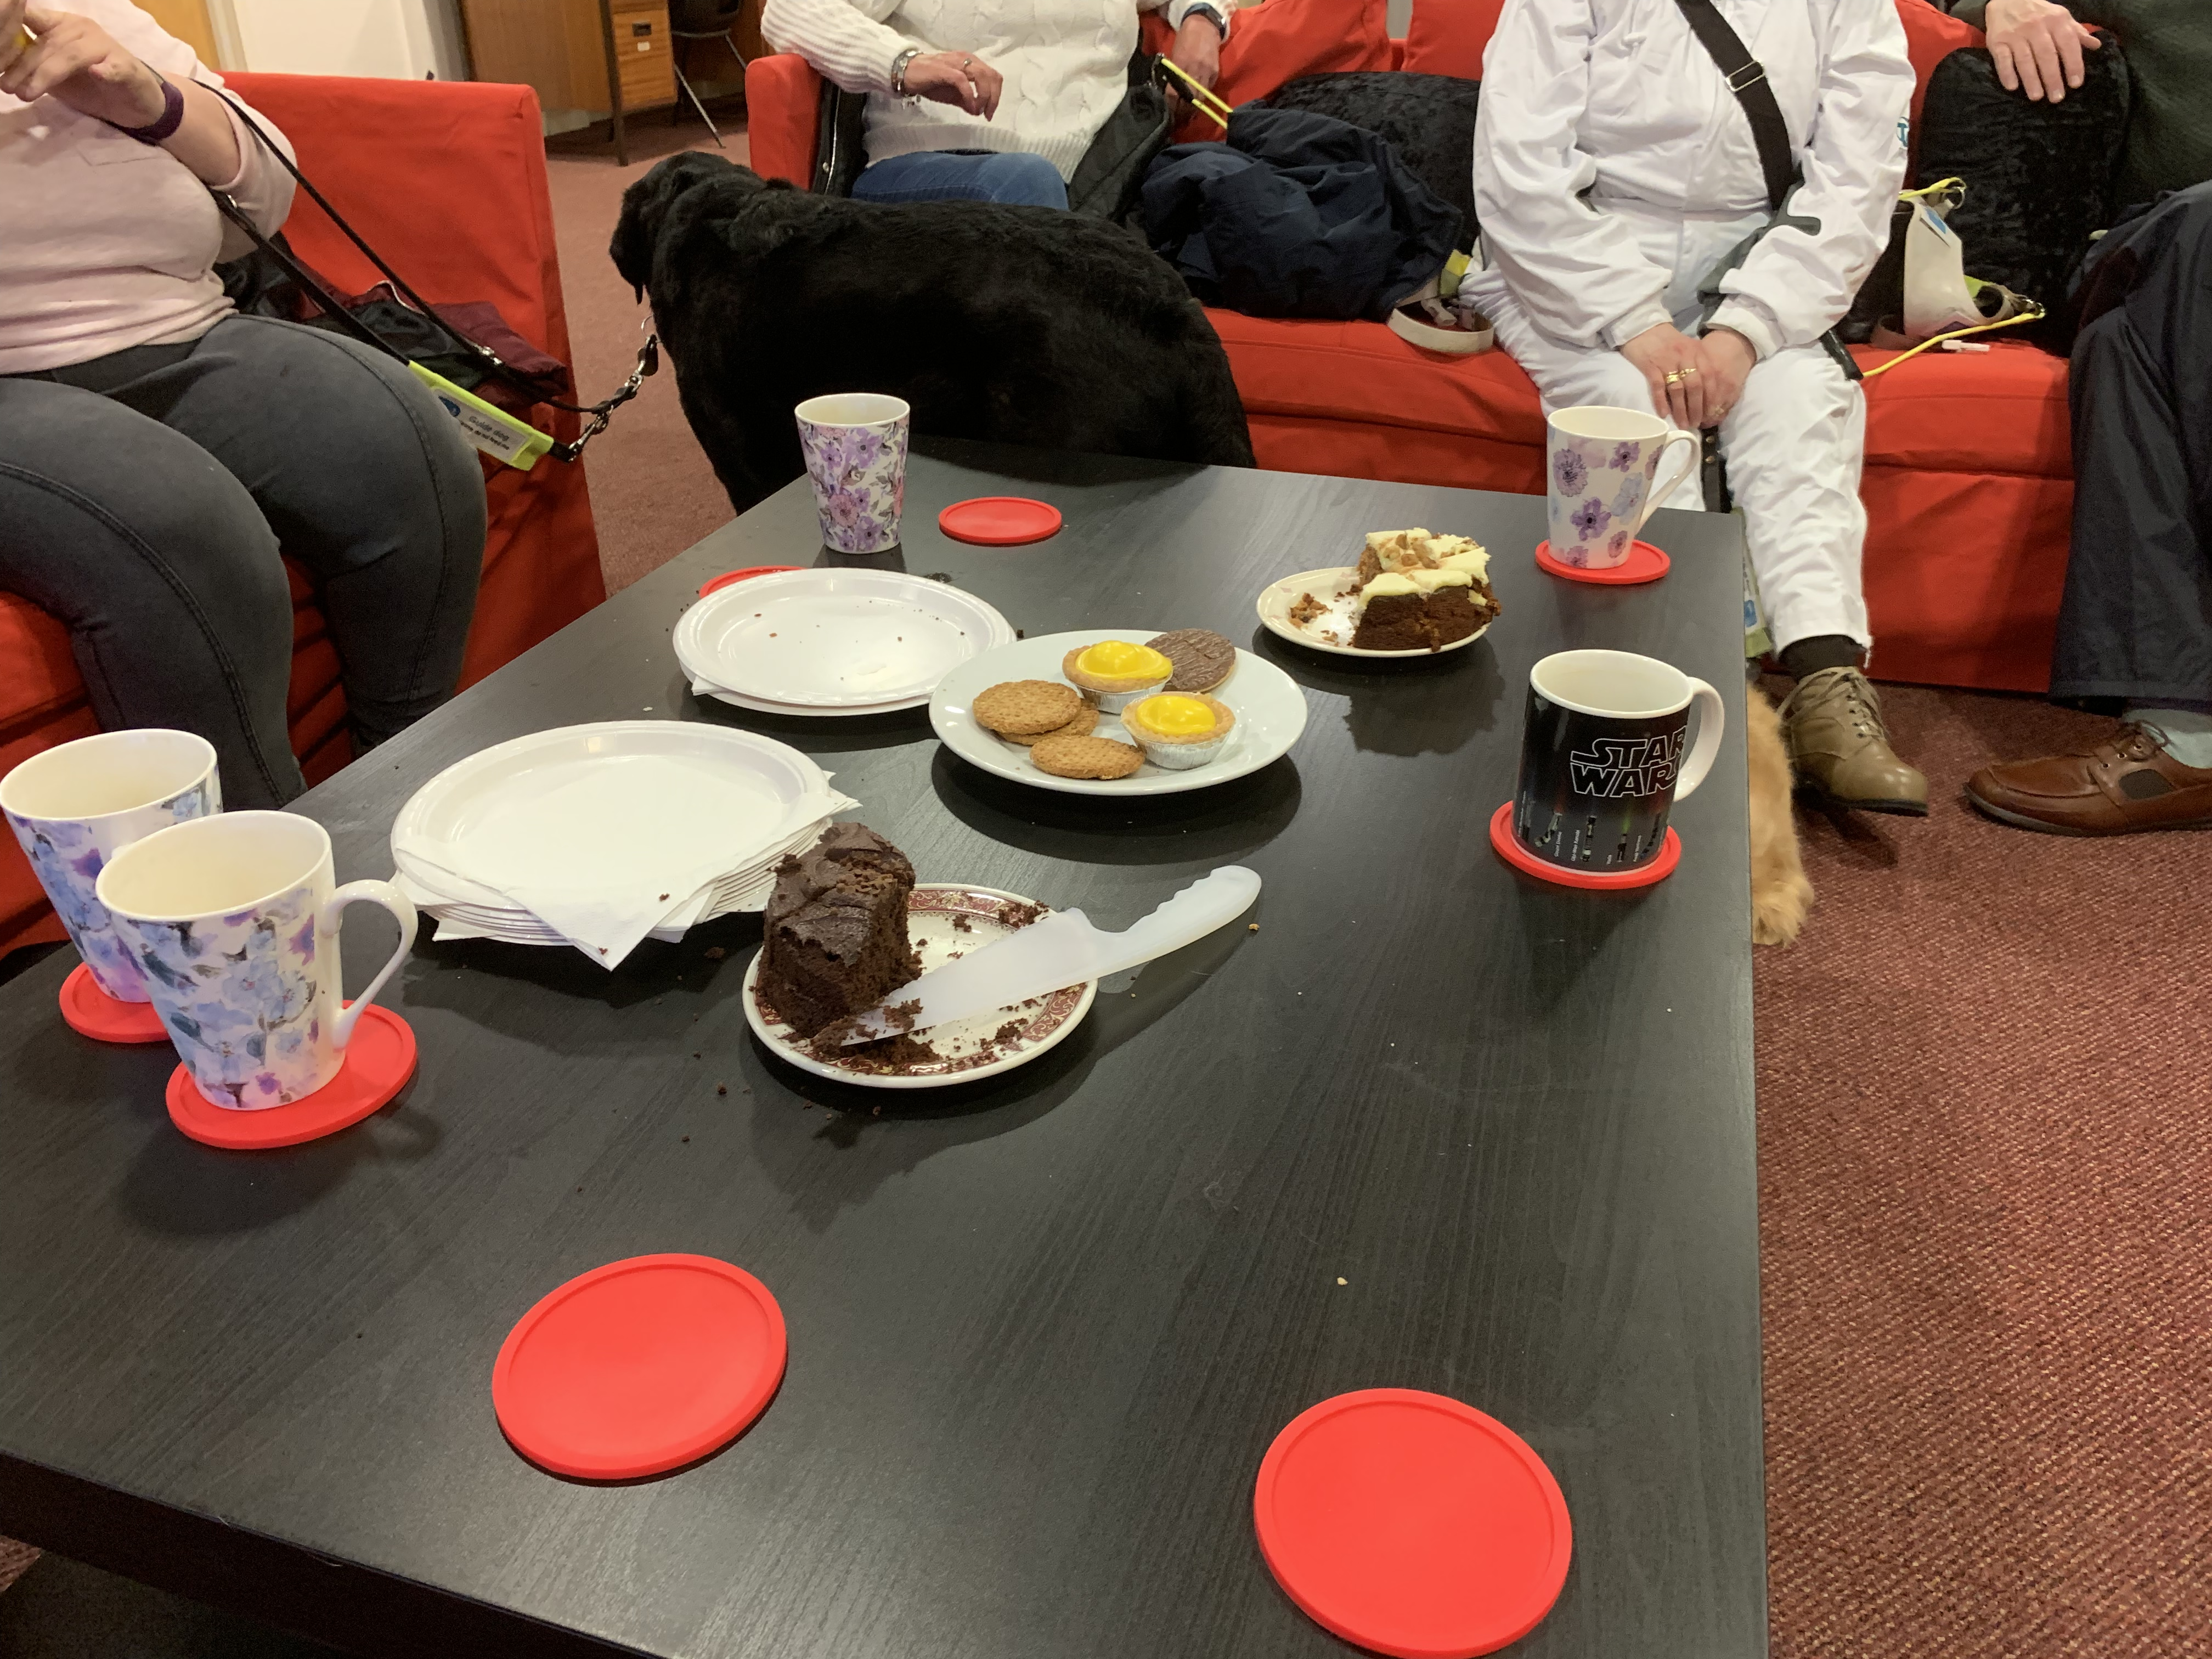 Our group of Cake Coffee and Chat. With some cakes still left on the Table. however they were not there for long.